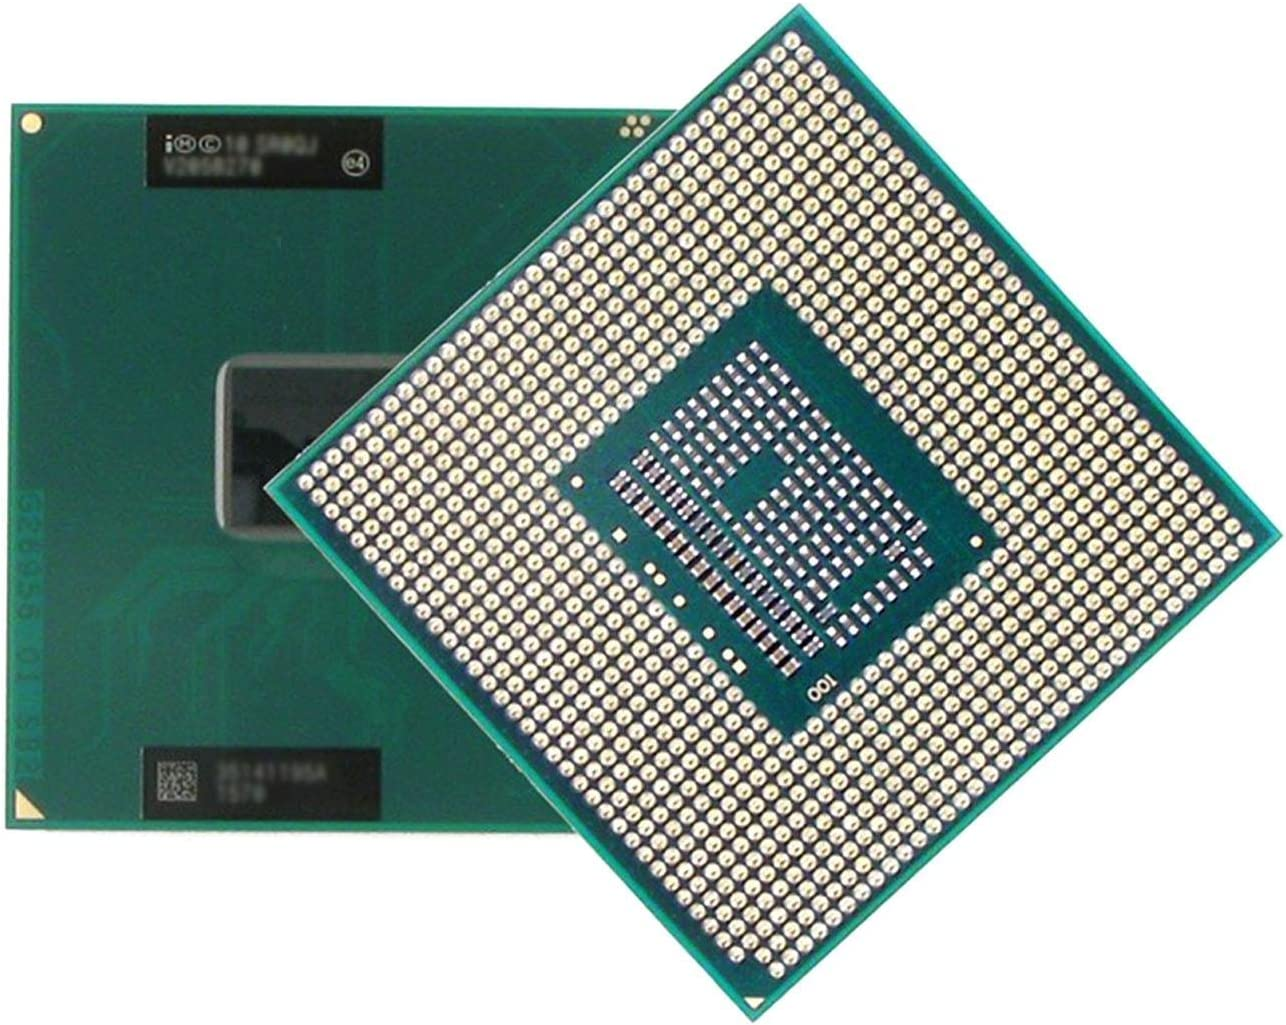 Intel Core i7-3632QM SR0V0 Mobile CPU Processor Socket G2 PGA988B 6MB 2.2GHz